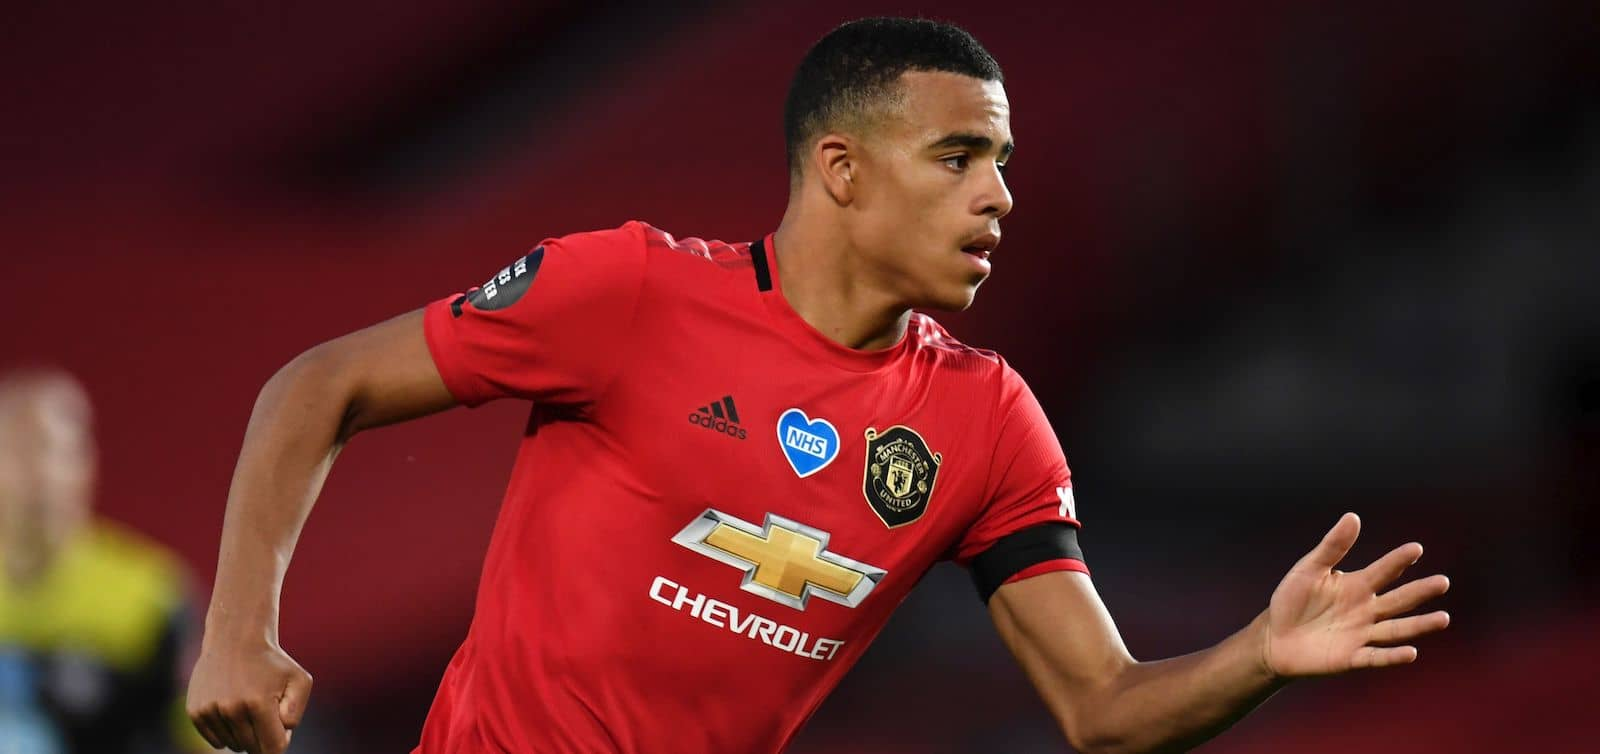 Mason Greenwood continues to break records for Man United